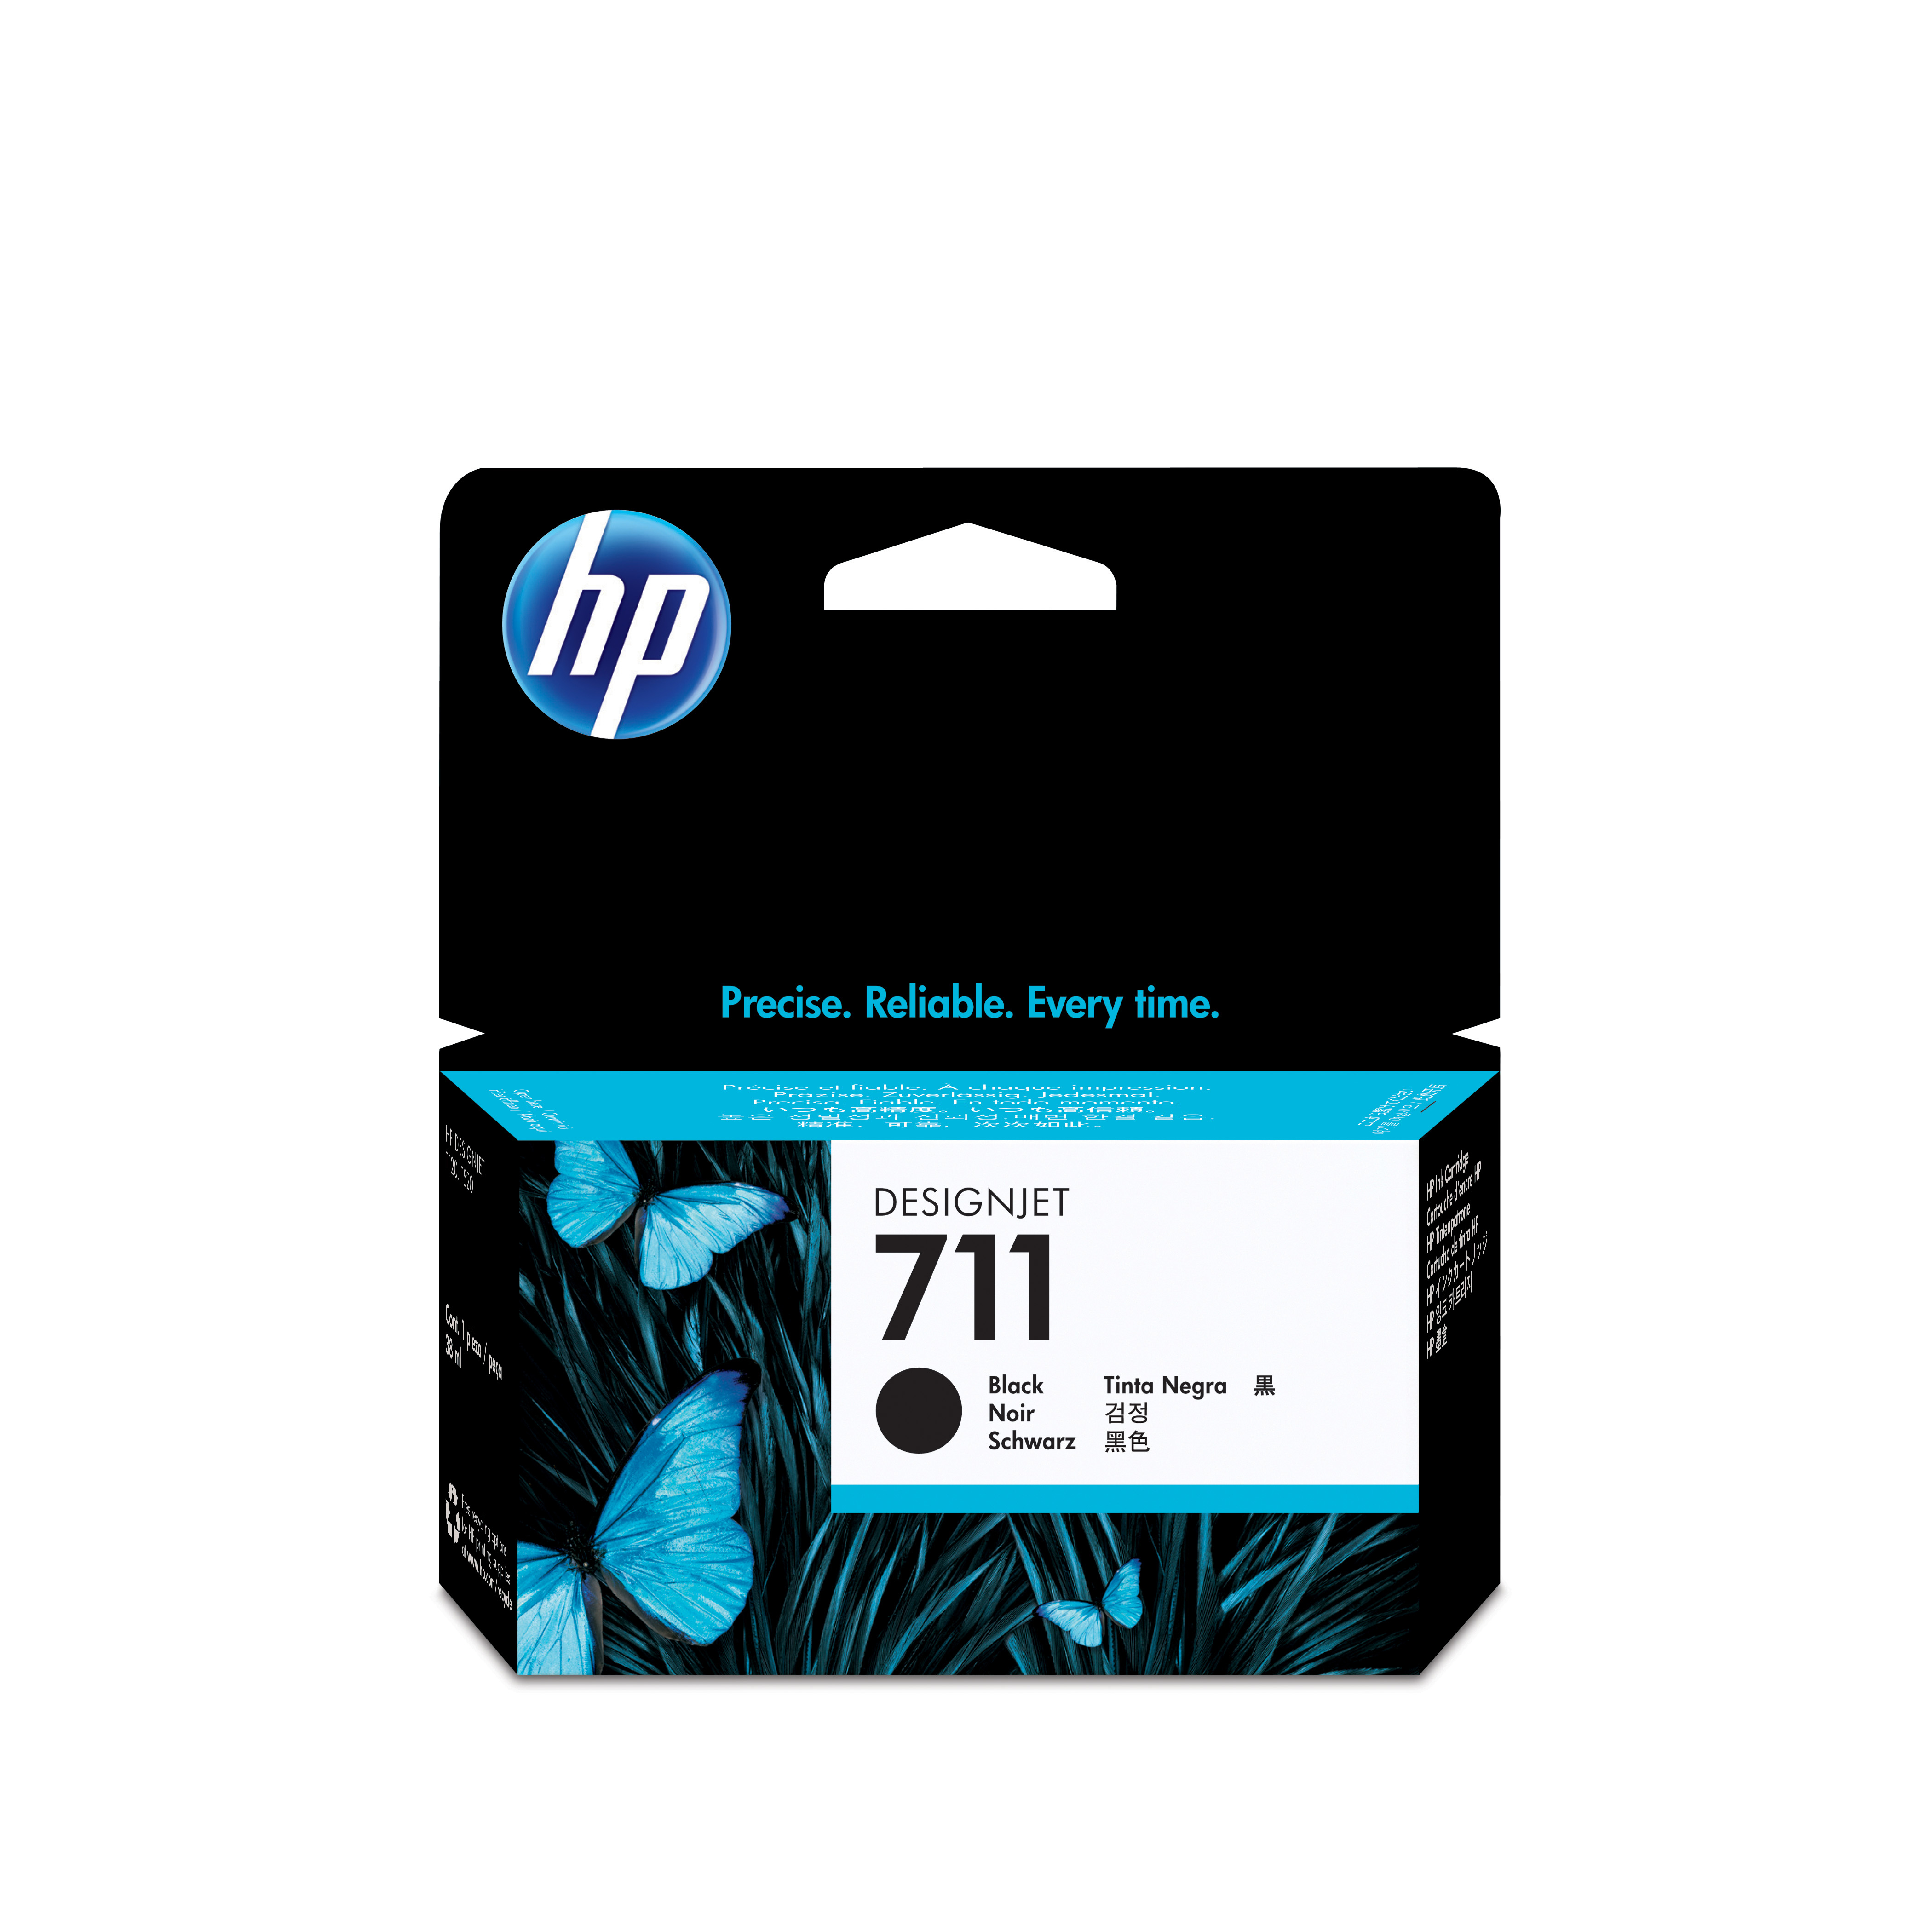 Hpcz129a       Hp 711 38-ml Black Ink         Cartridge                                                    - UF01